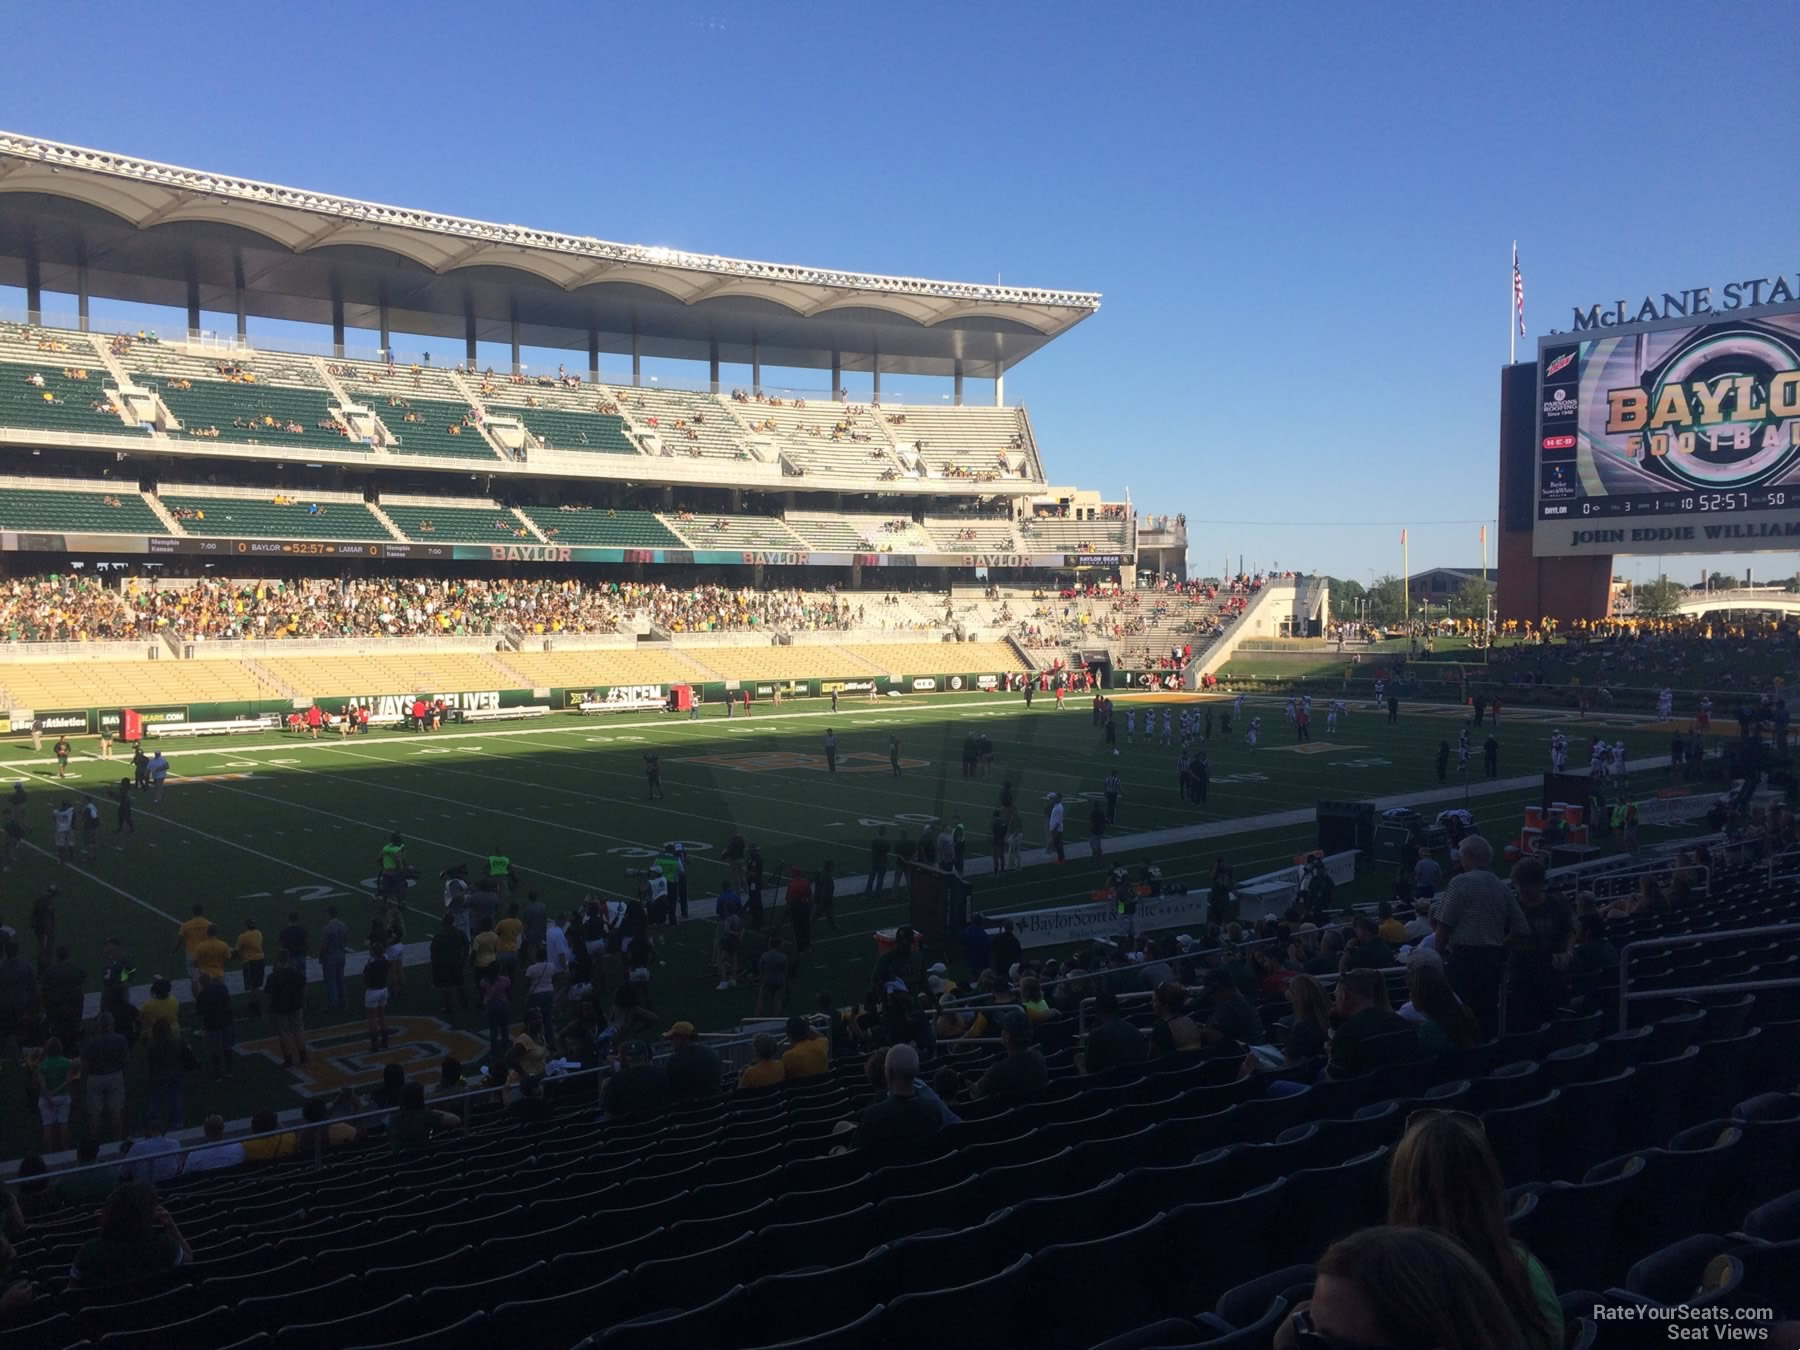 Seat View for McLane Stadium Section 109, Row 20